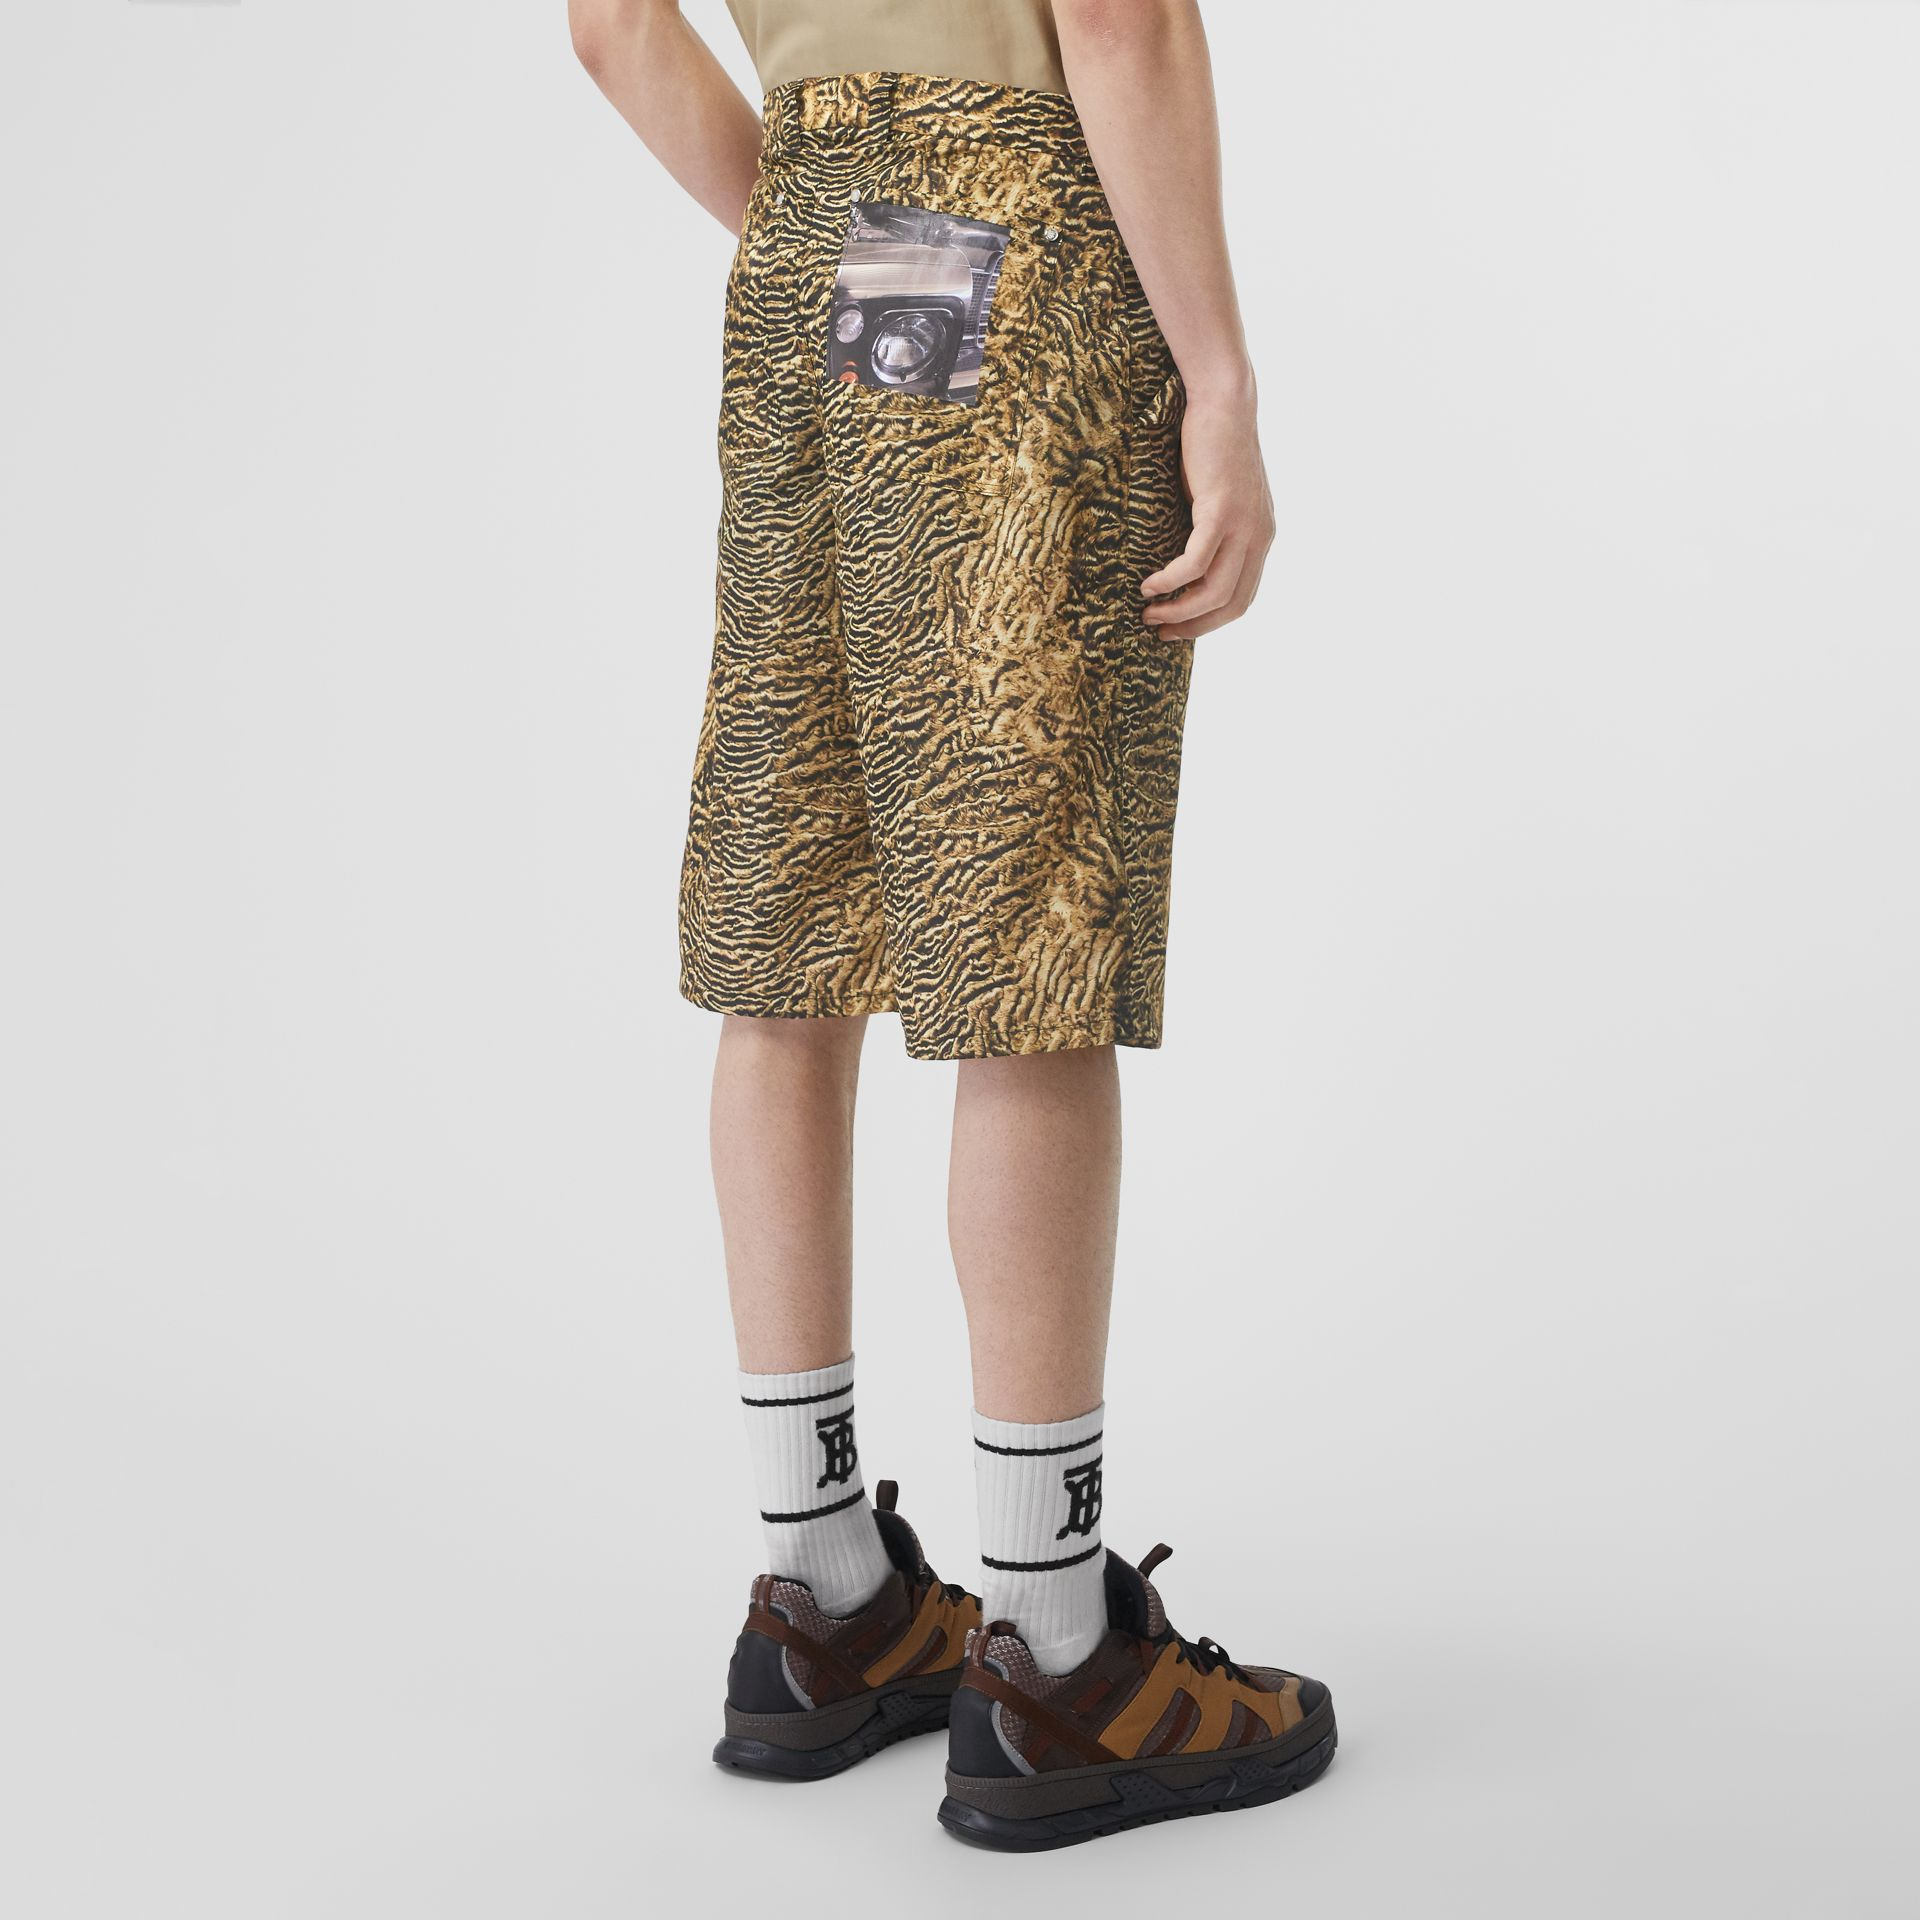 Tiger Print Nylon Shorts in Beige | Burberry - gallery image 2